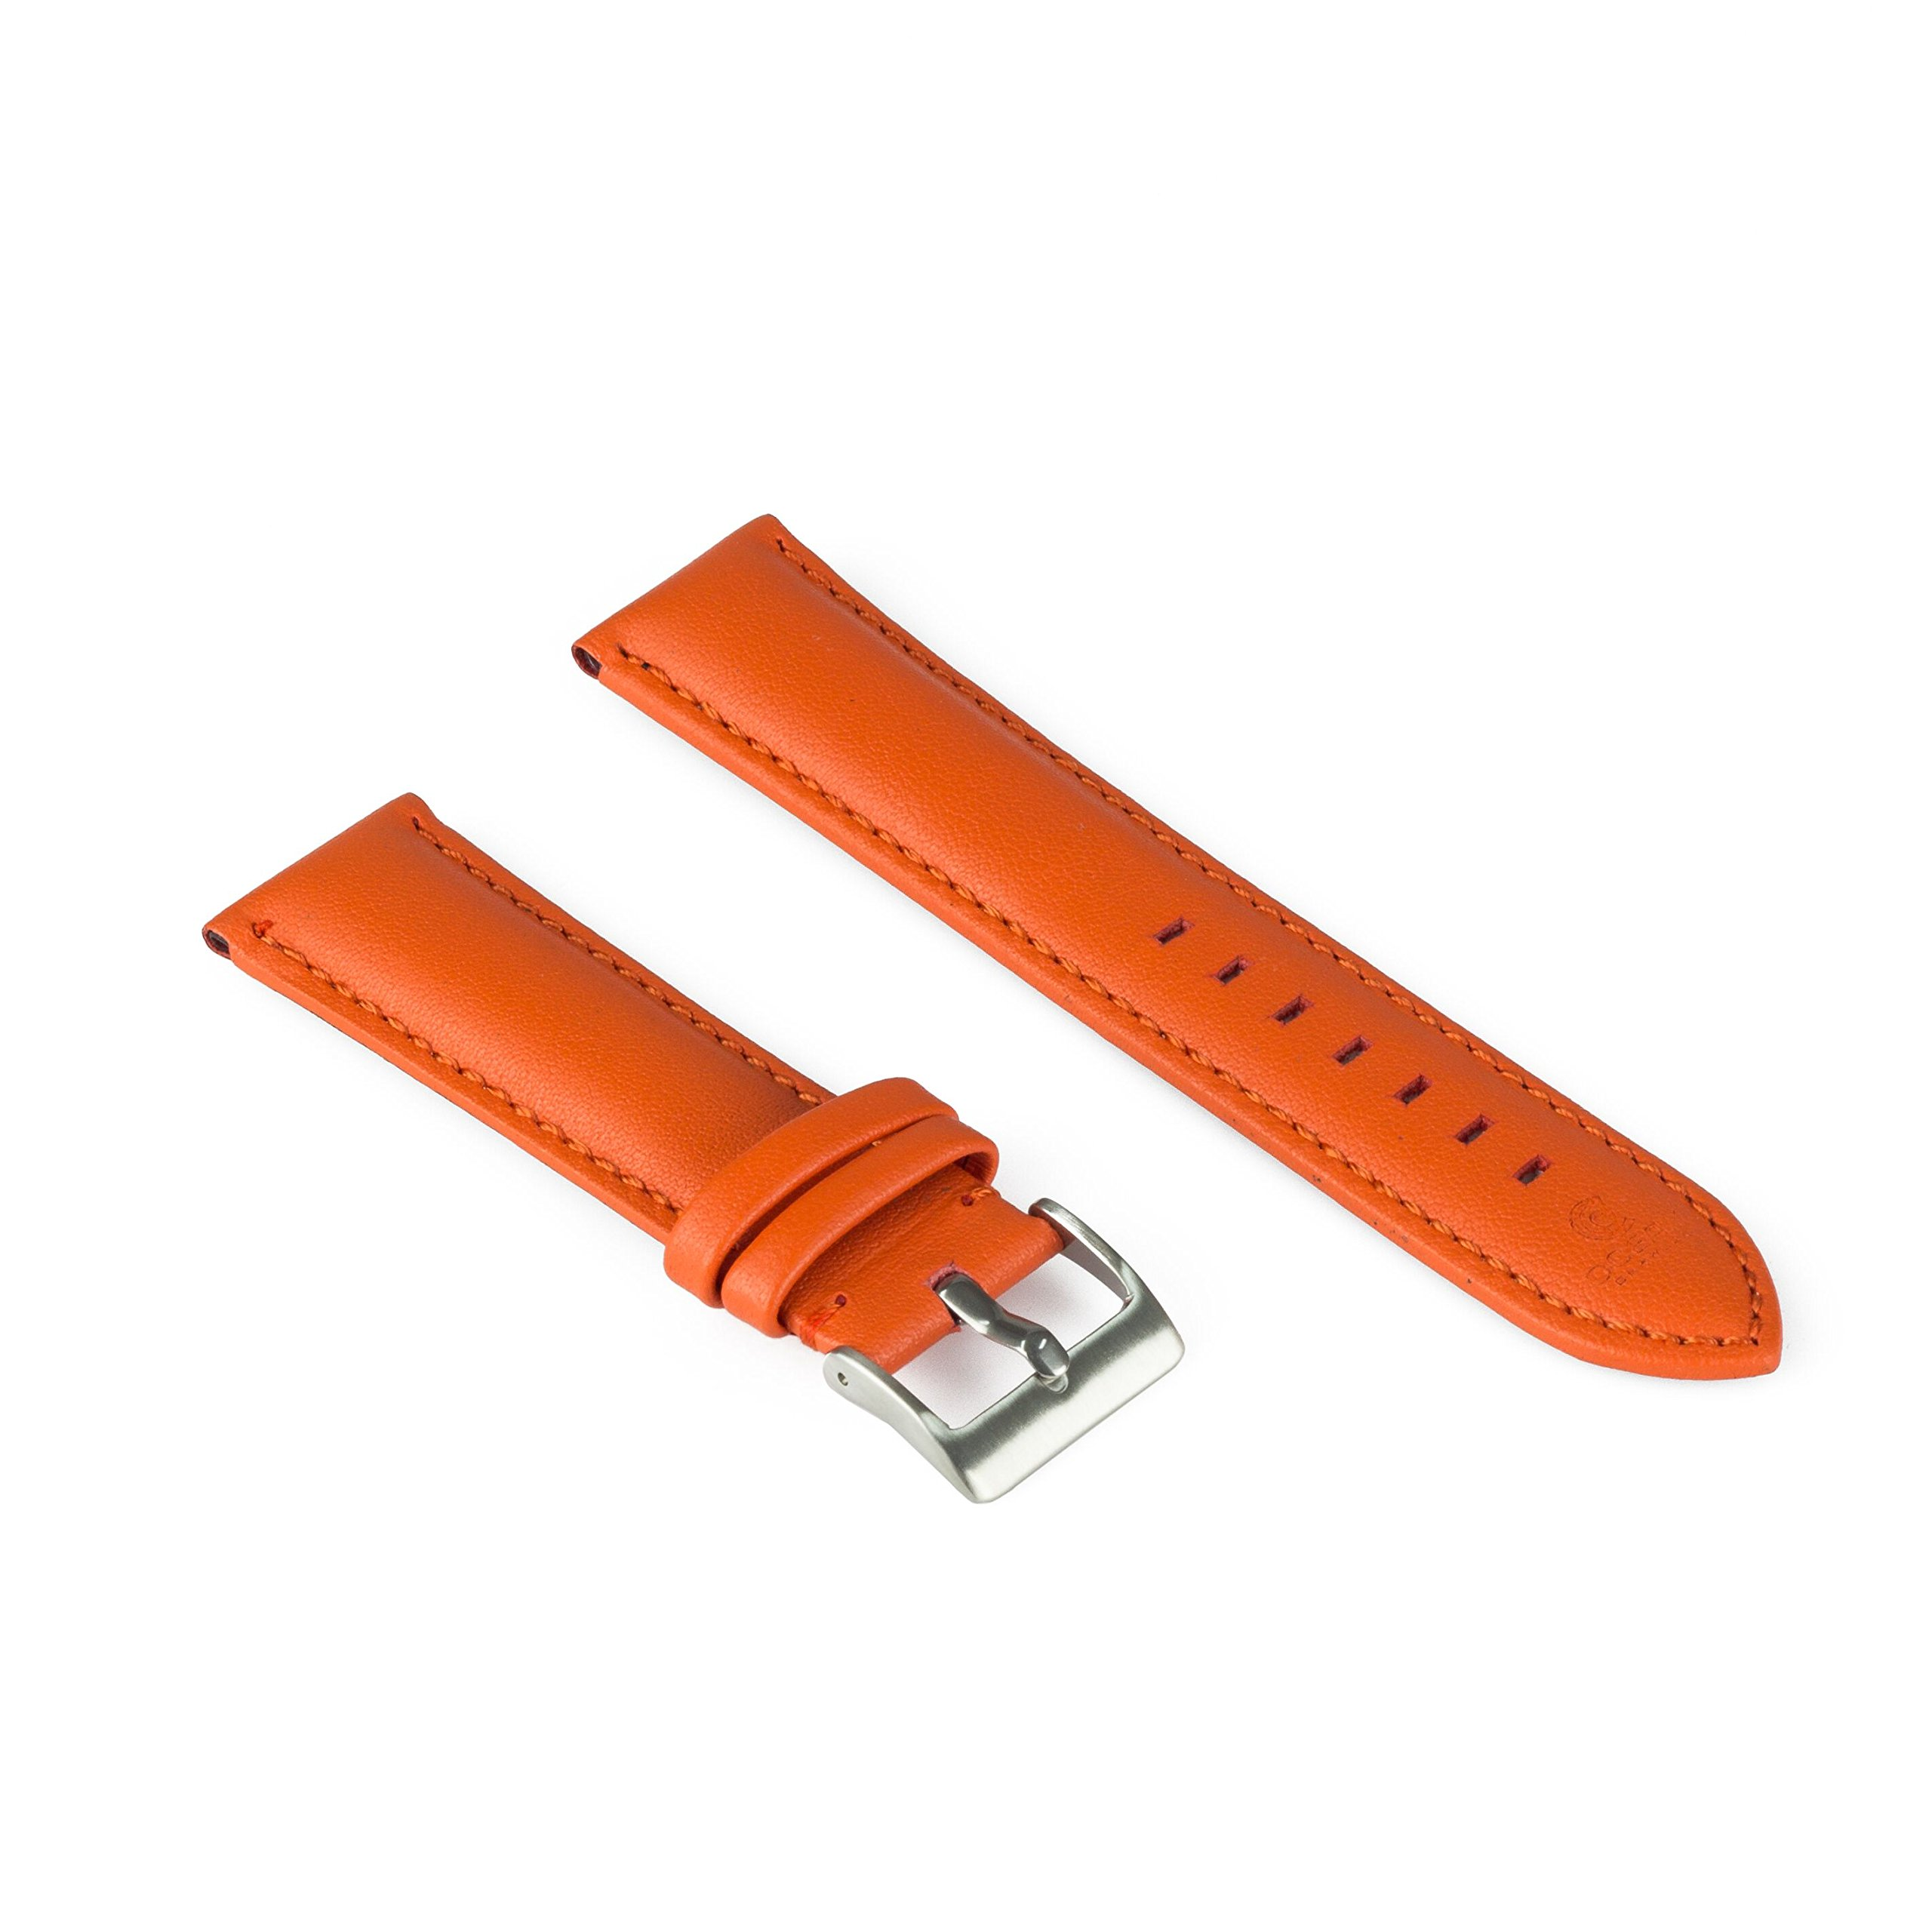 Hand Made Watch Leather Band Strap Orange - Padded and Hand Stitched Strap - 22mm